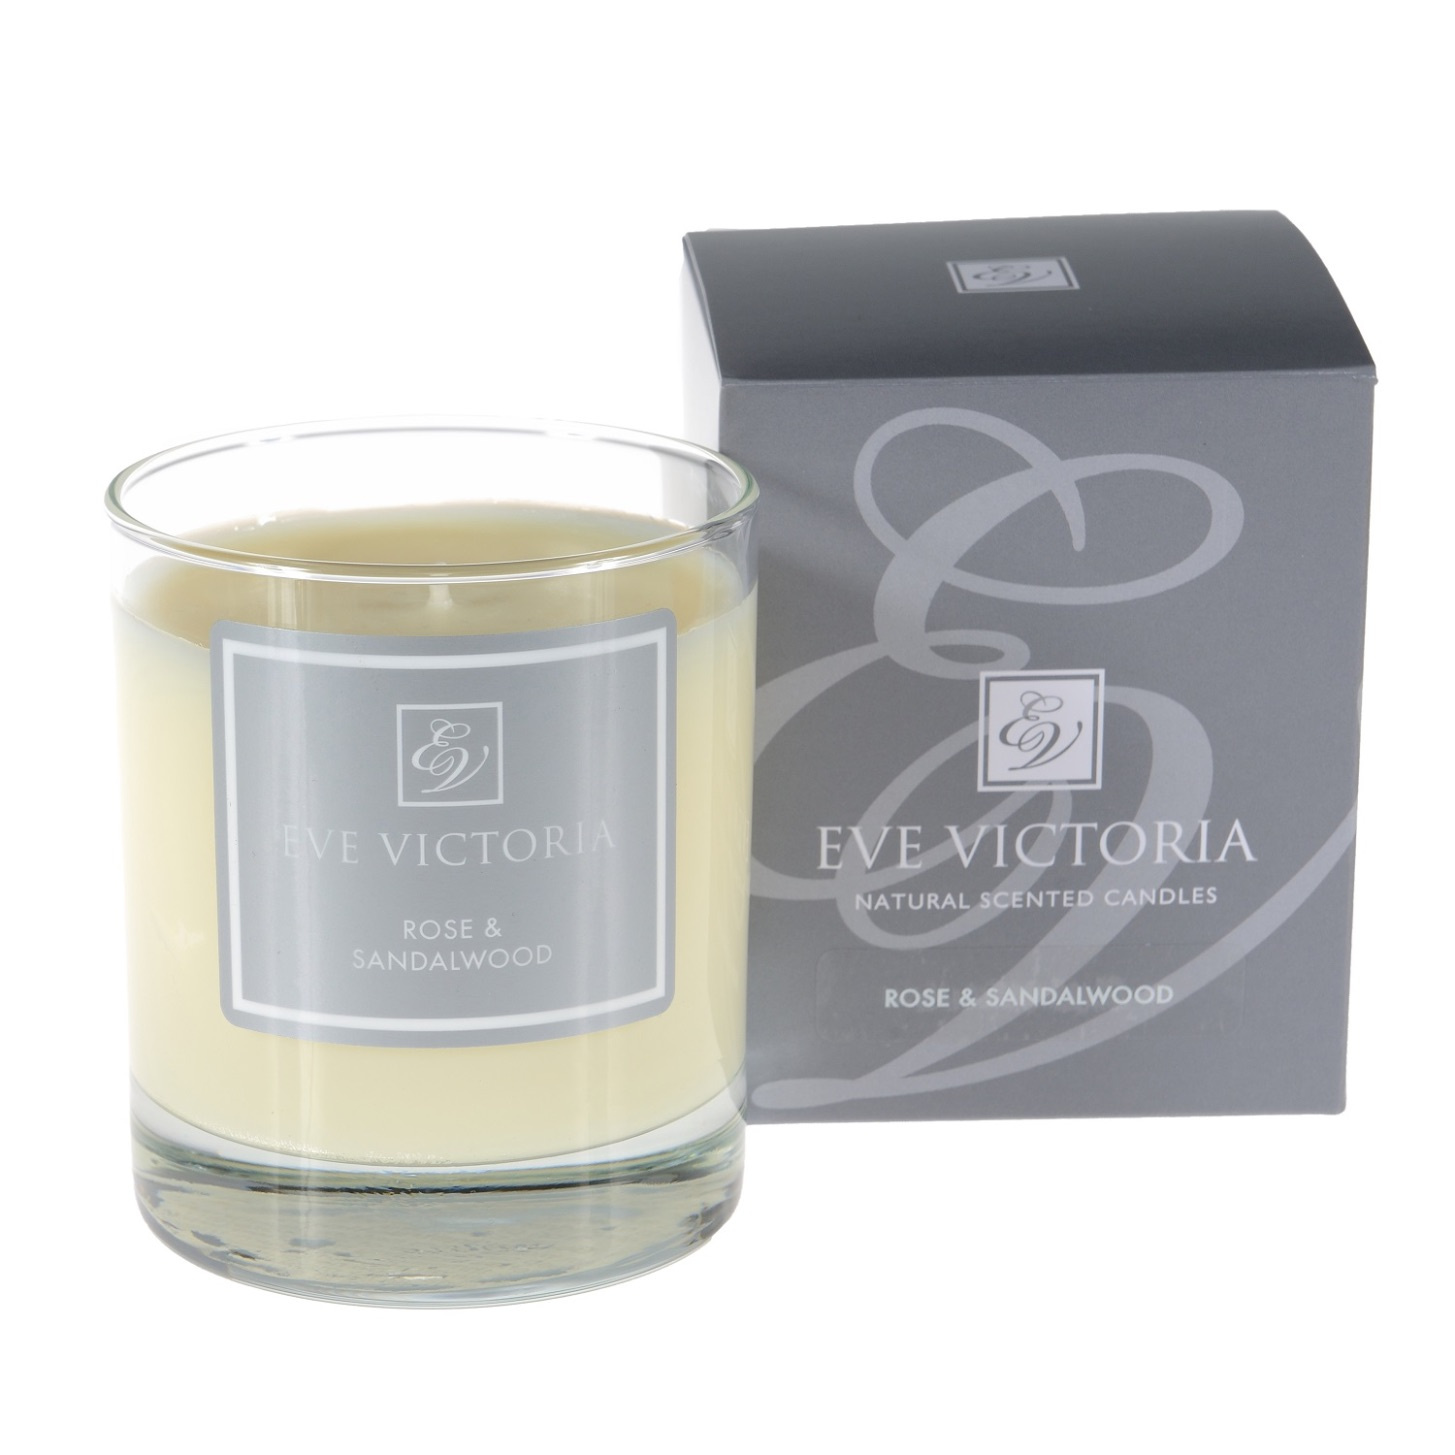 Eve Victoria Rose & Sandalwood Small Candle